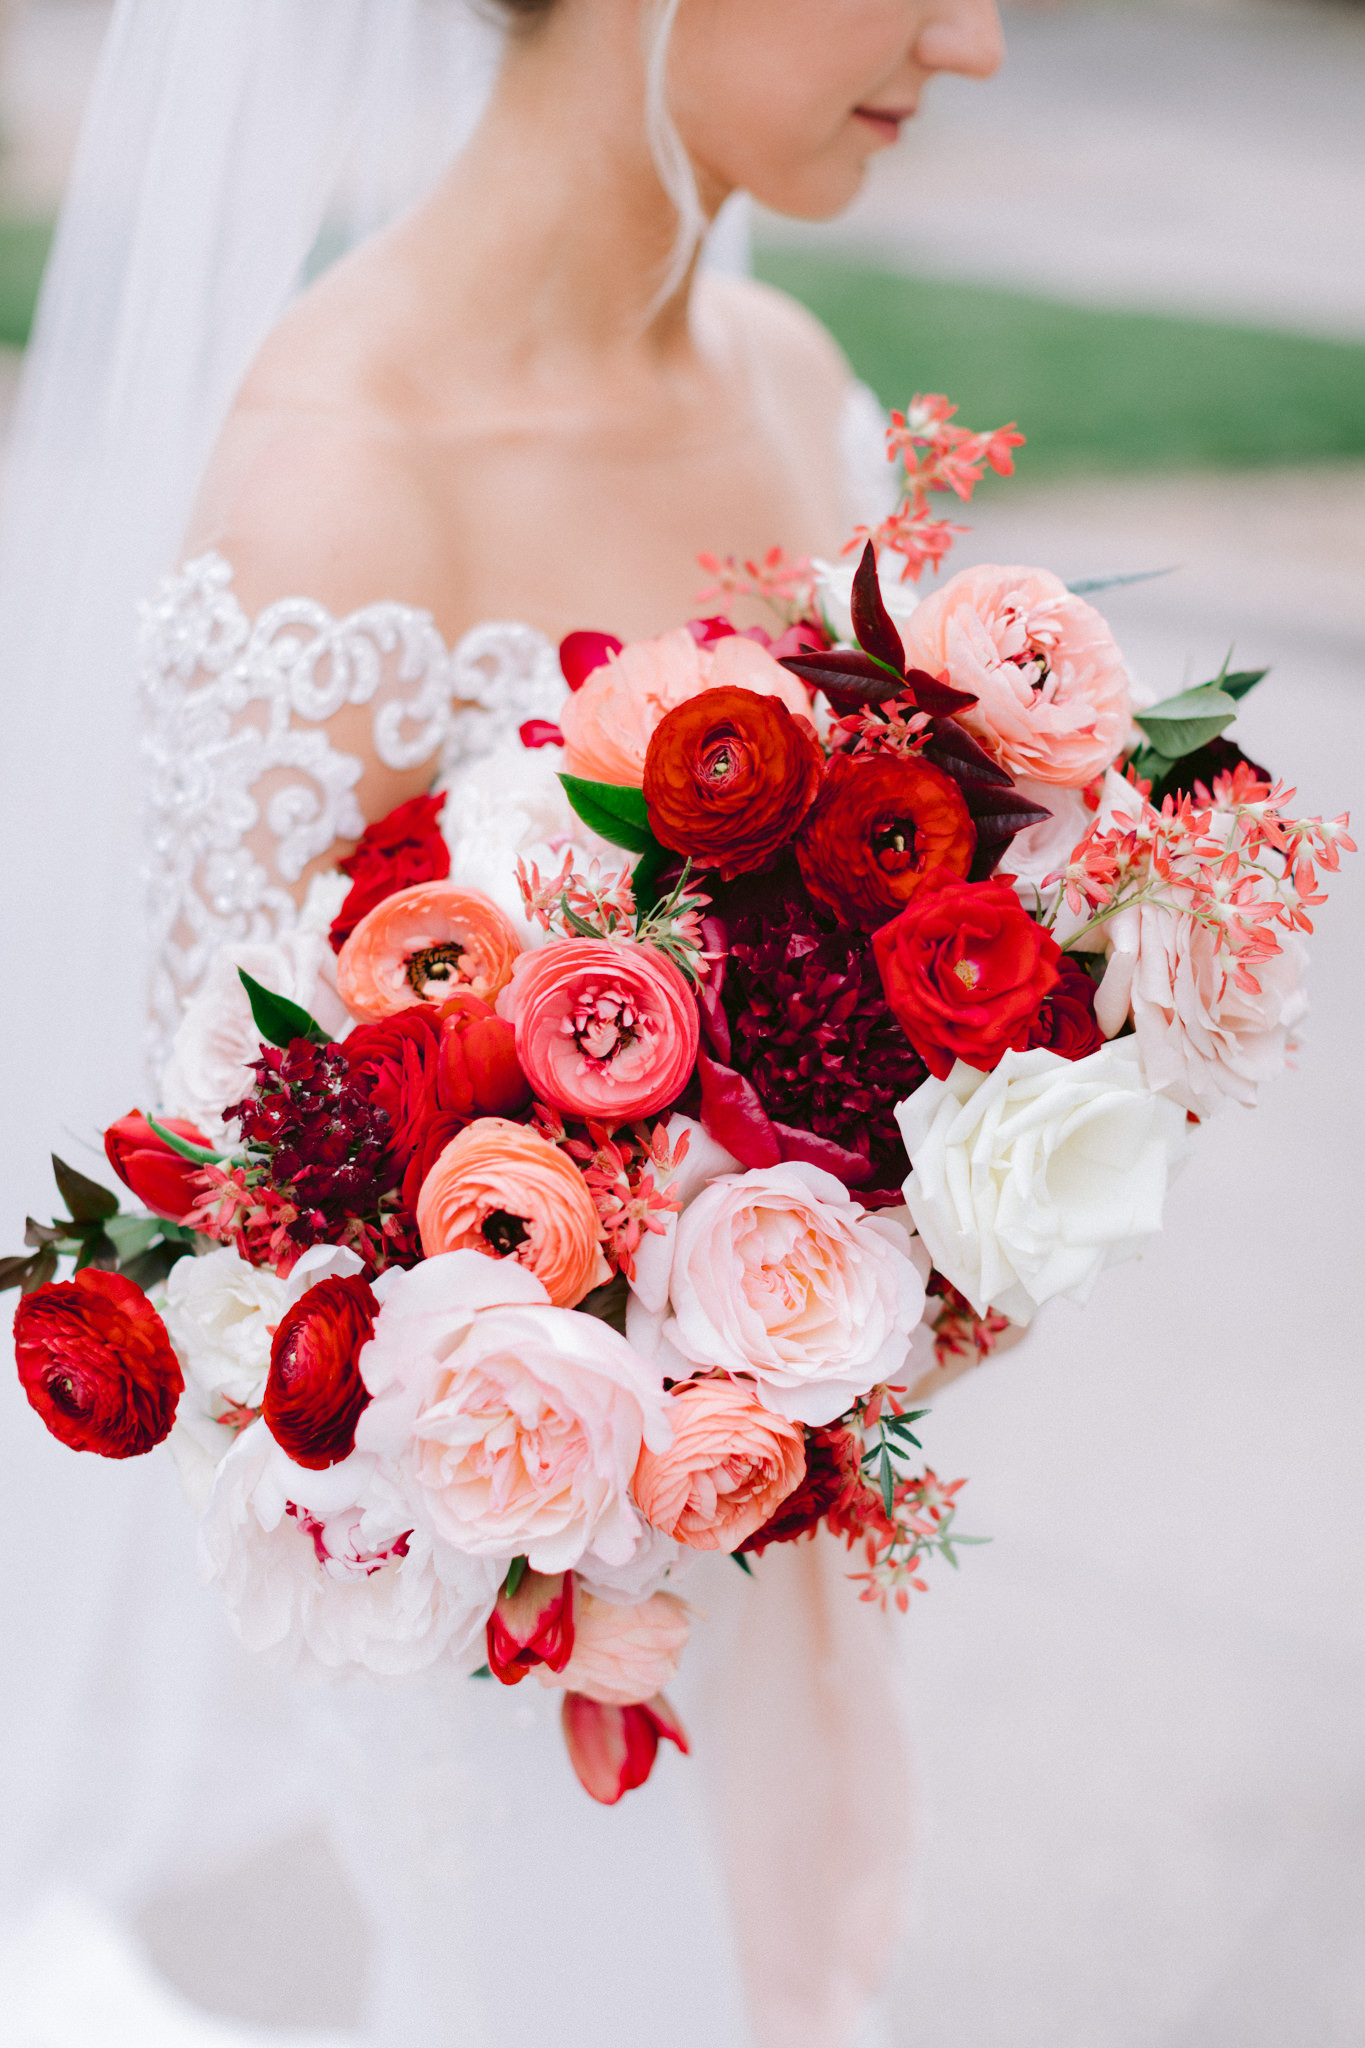 Blush and red bridal bouquet with peonies, garden roses, ranunculus, and tulips. Photo: Susie and Will